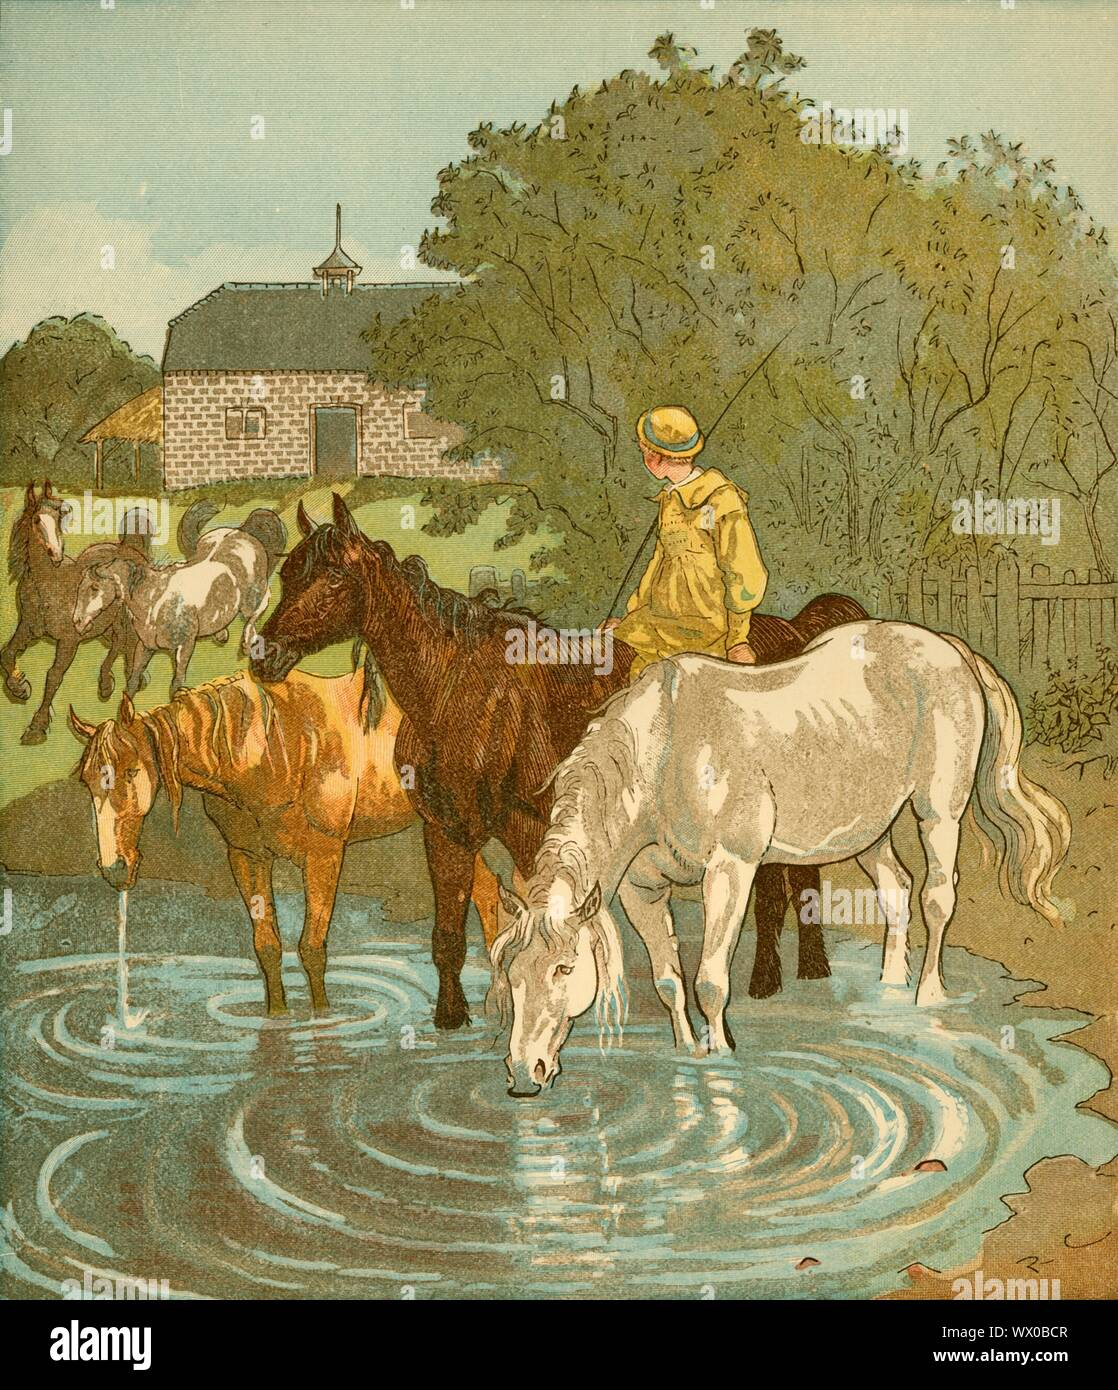 """The Farmer's Boy watering horses, c1881. 'When I was a farmer, a Farmer's Boy, I used to keep my master's horses'. From """"The Farmer's Boy"""" written and illustrated by Randolph Caldecott. [Originally published in 1881 as part of Caldecott's 'Picture Books' series] Stock Photo"""